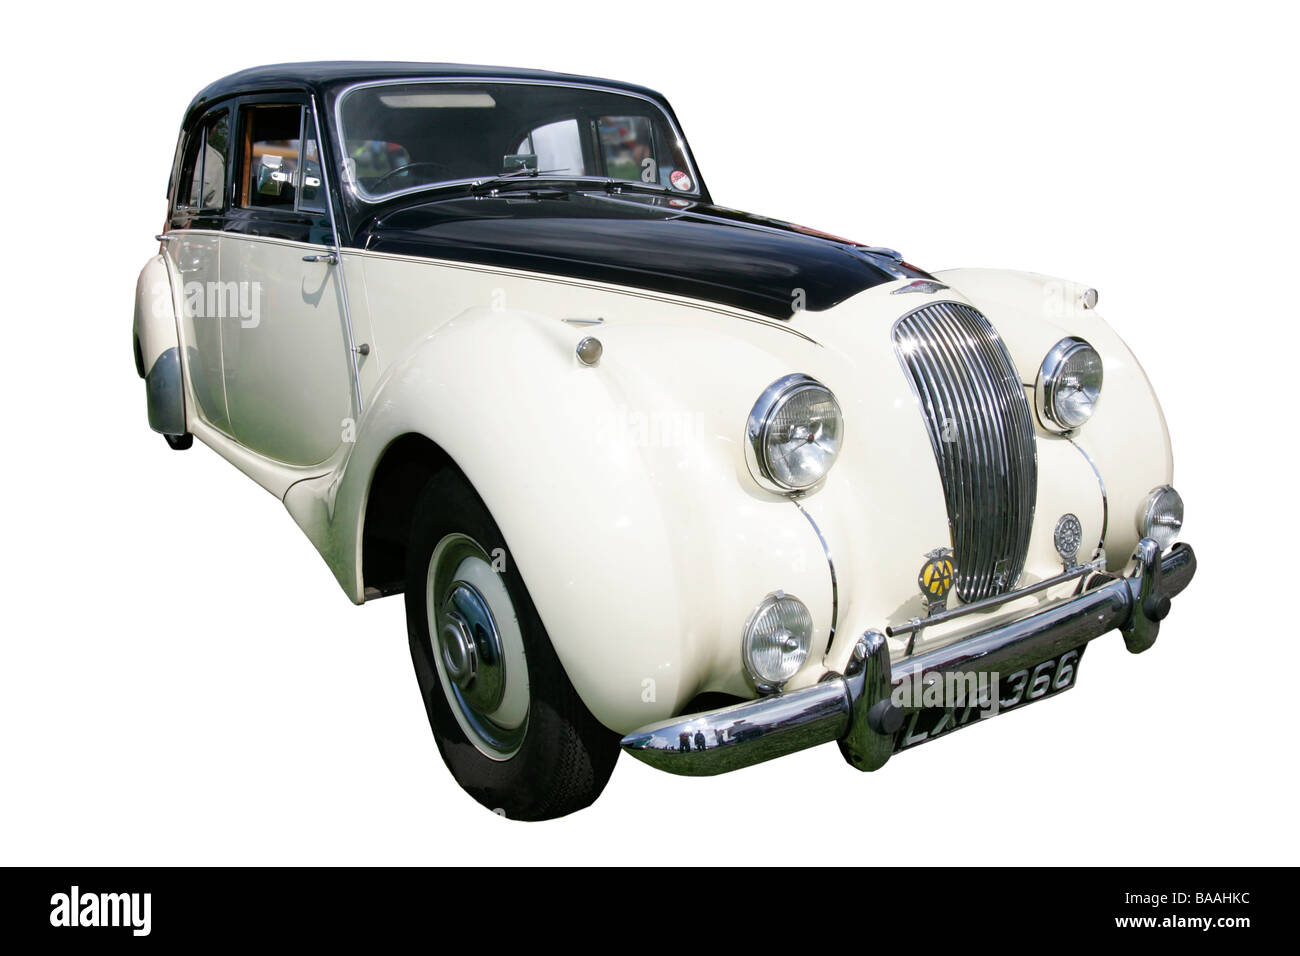 car old classic history vehicle vintage antipodes symbol collector ...